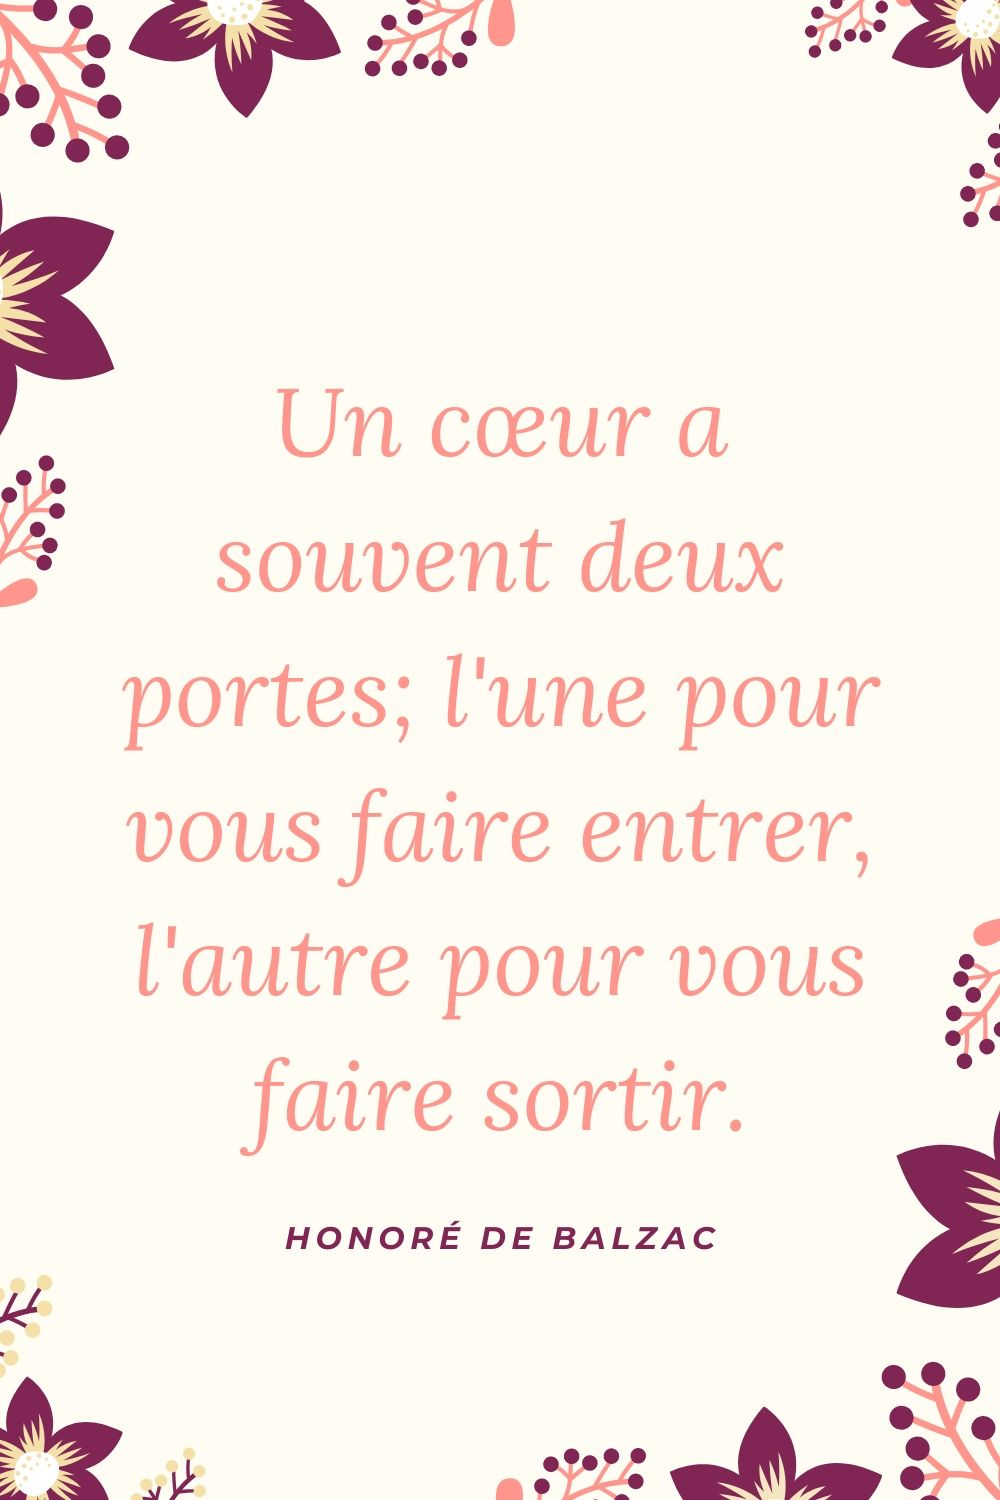 Citation Amour D Une Mere : citation, amour, Citations, Surmonter, Rupture